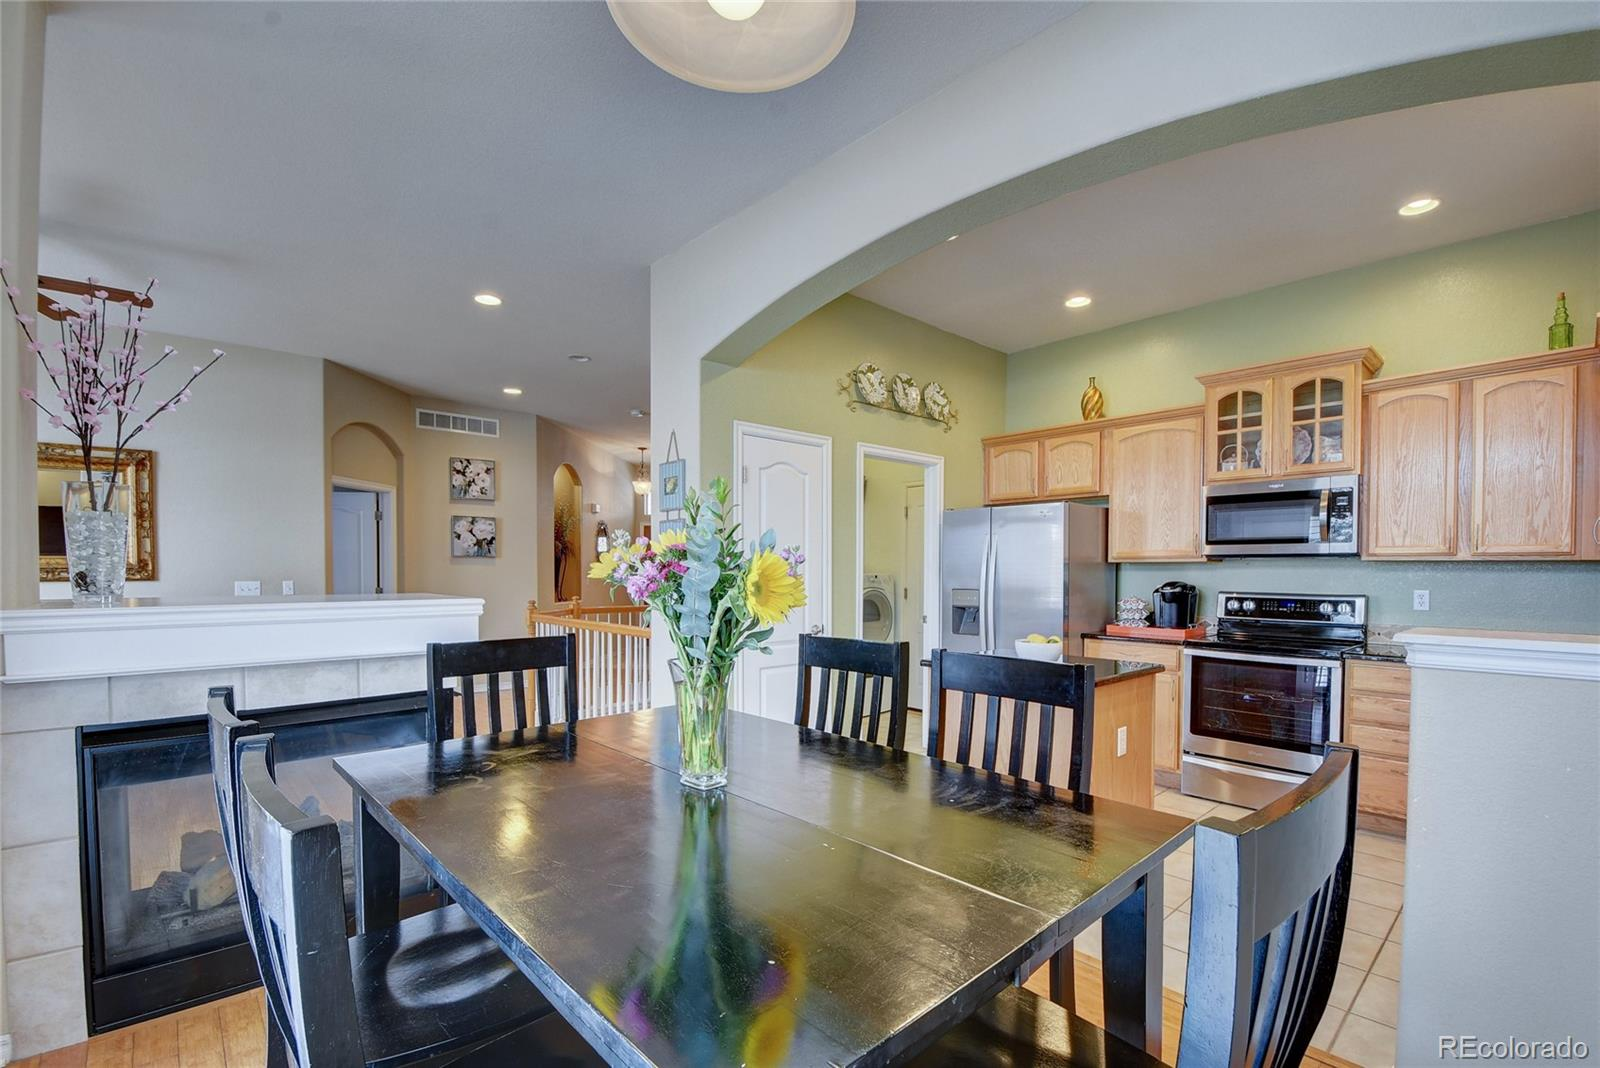 MLS# 6360939 - 13 - 10581 Pearlwood Circle, Highlands Ranch, CO 80126